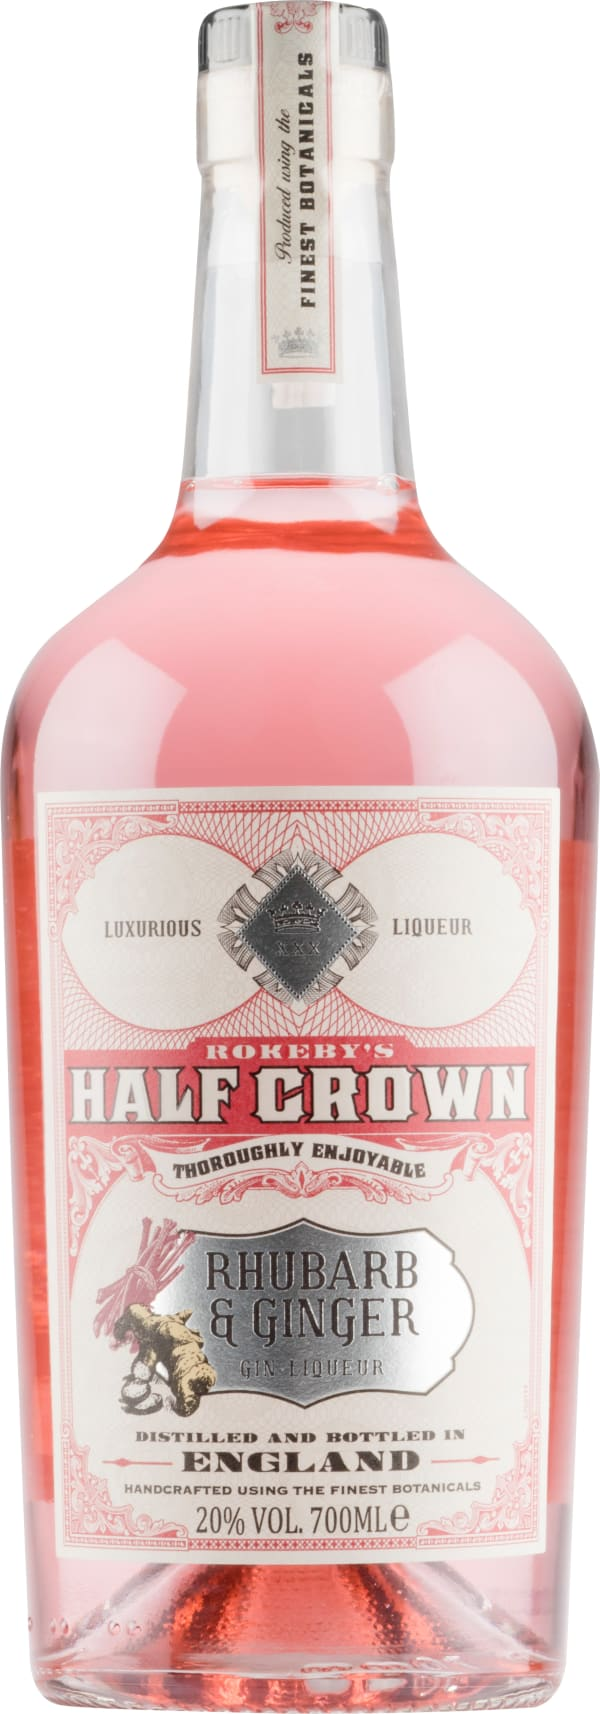 Rokeby's Half Crown Rhubarb and Ginger Gin Liqueur